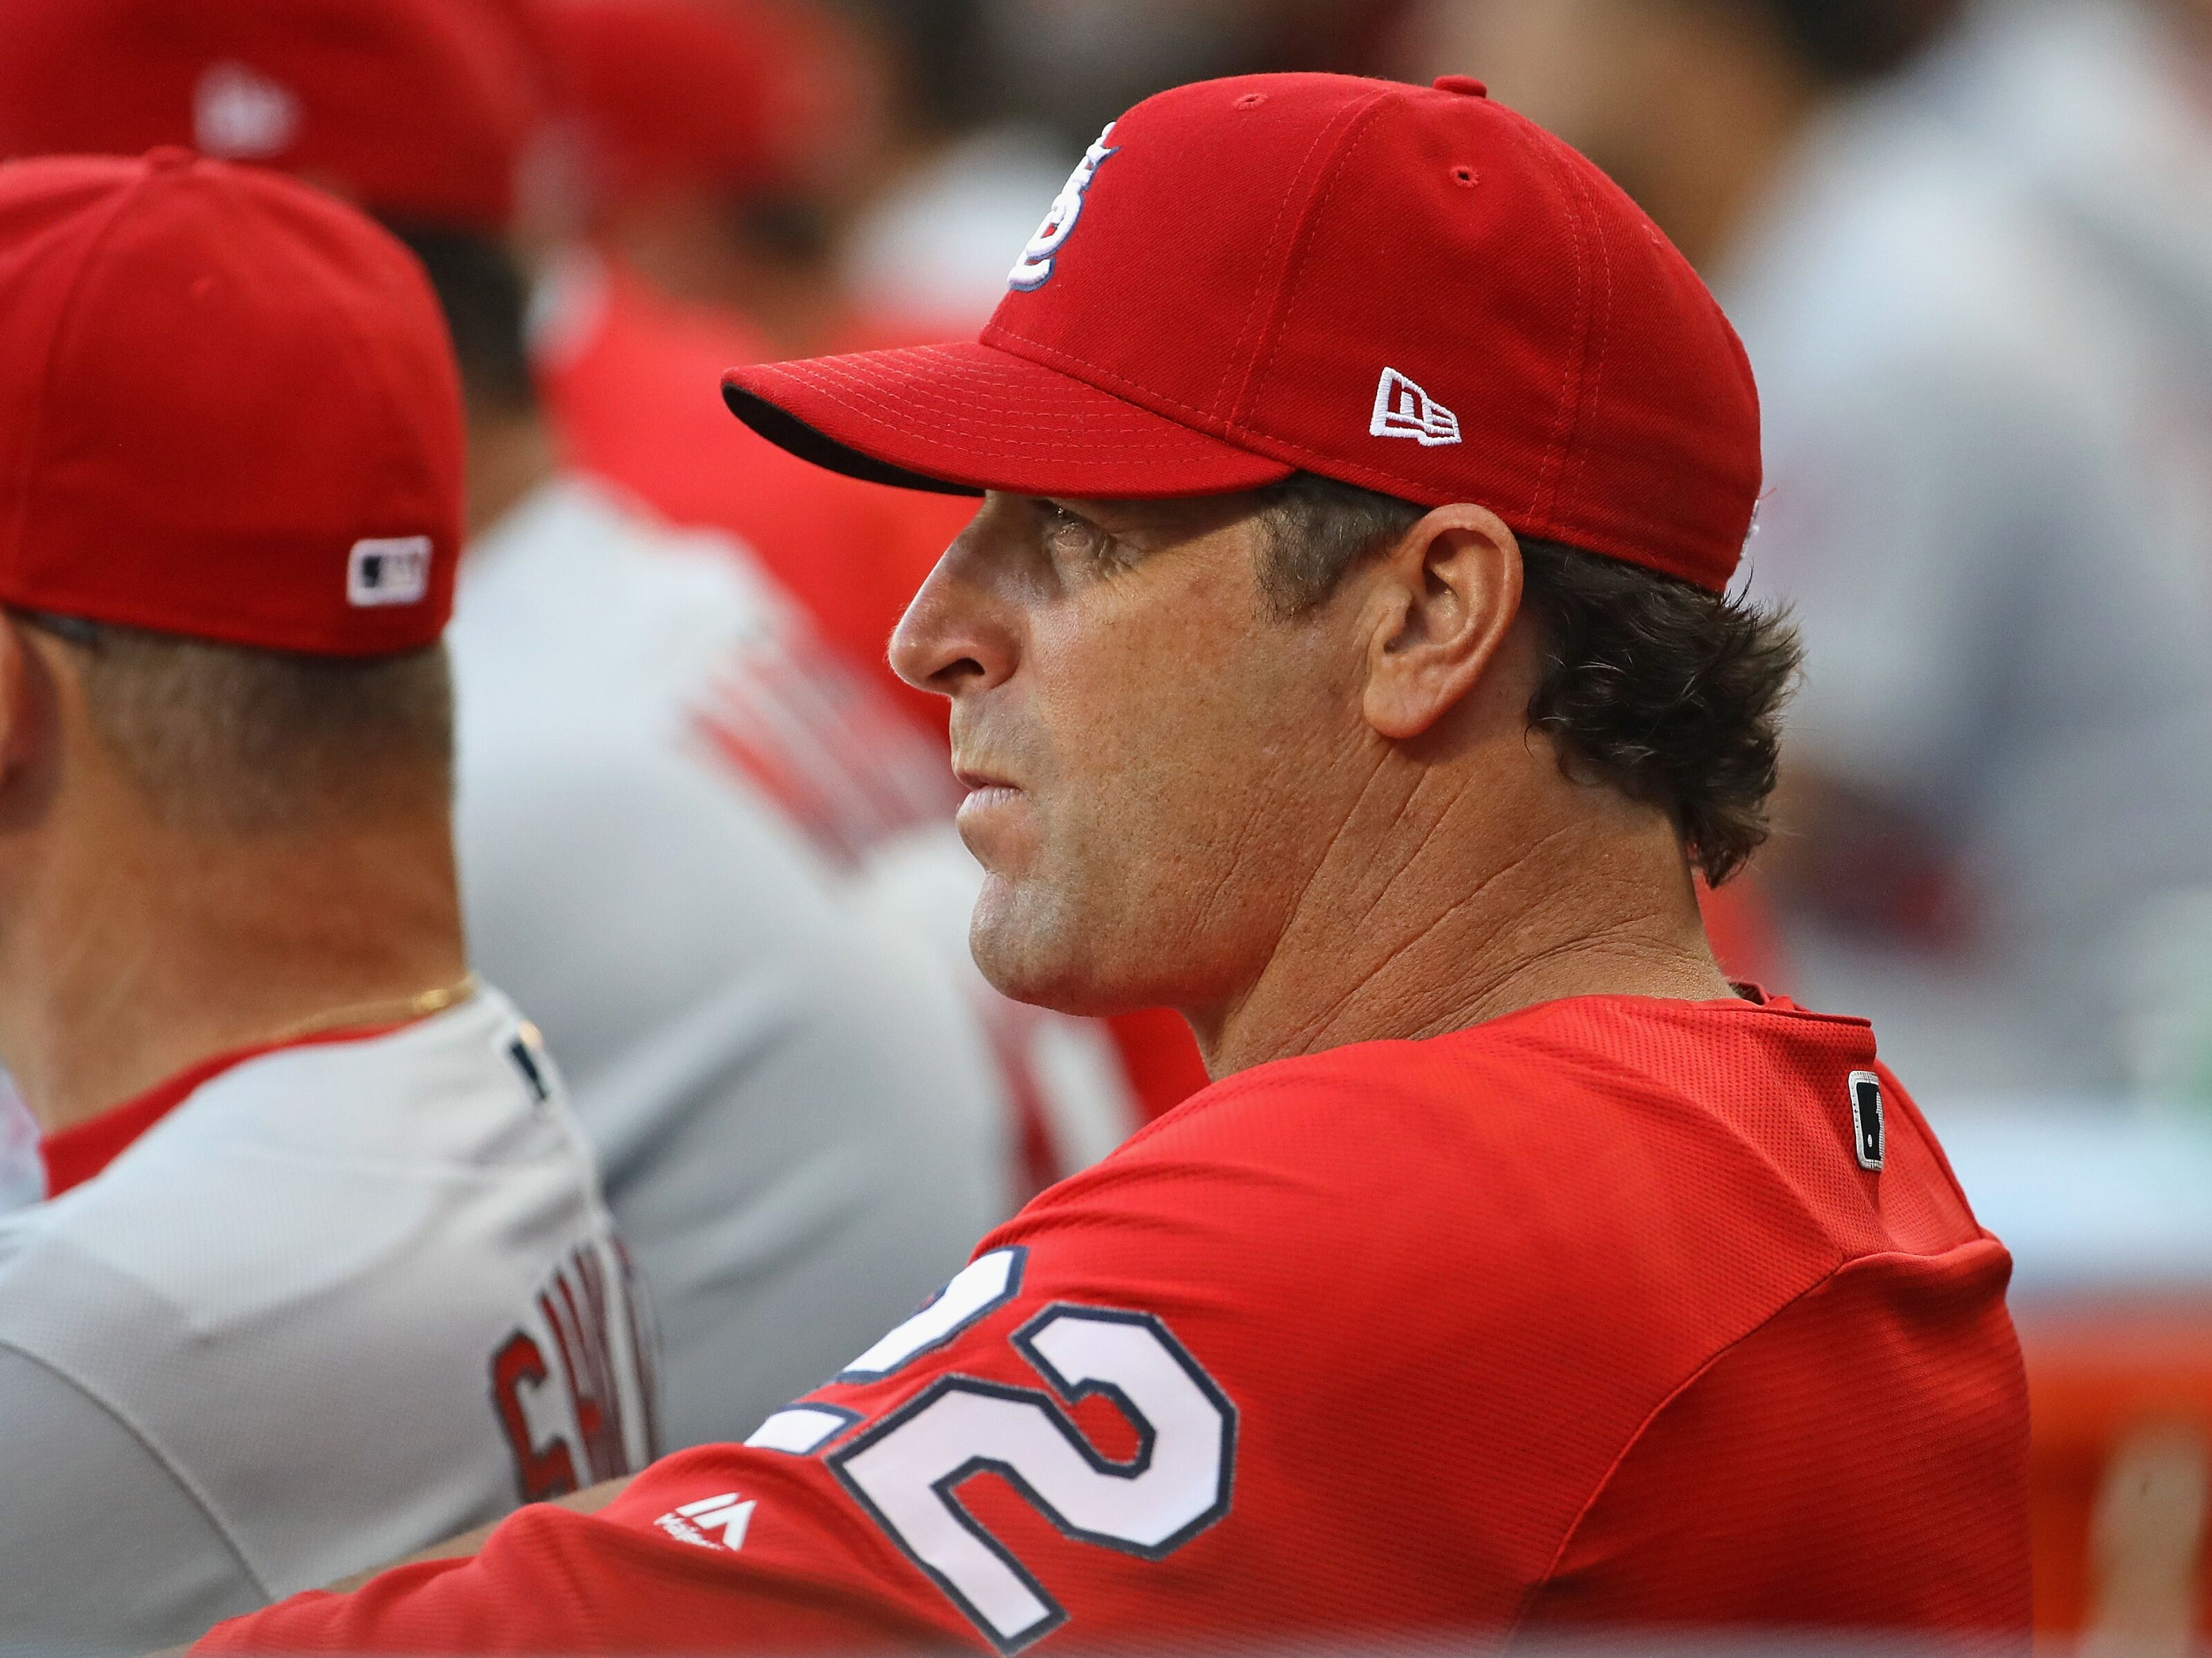 St. Louis Cardinals: Mike Matheny hired by Royals as advisor